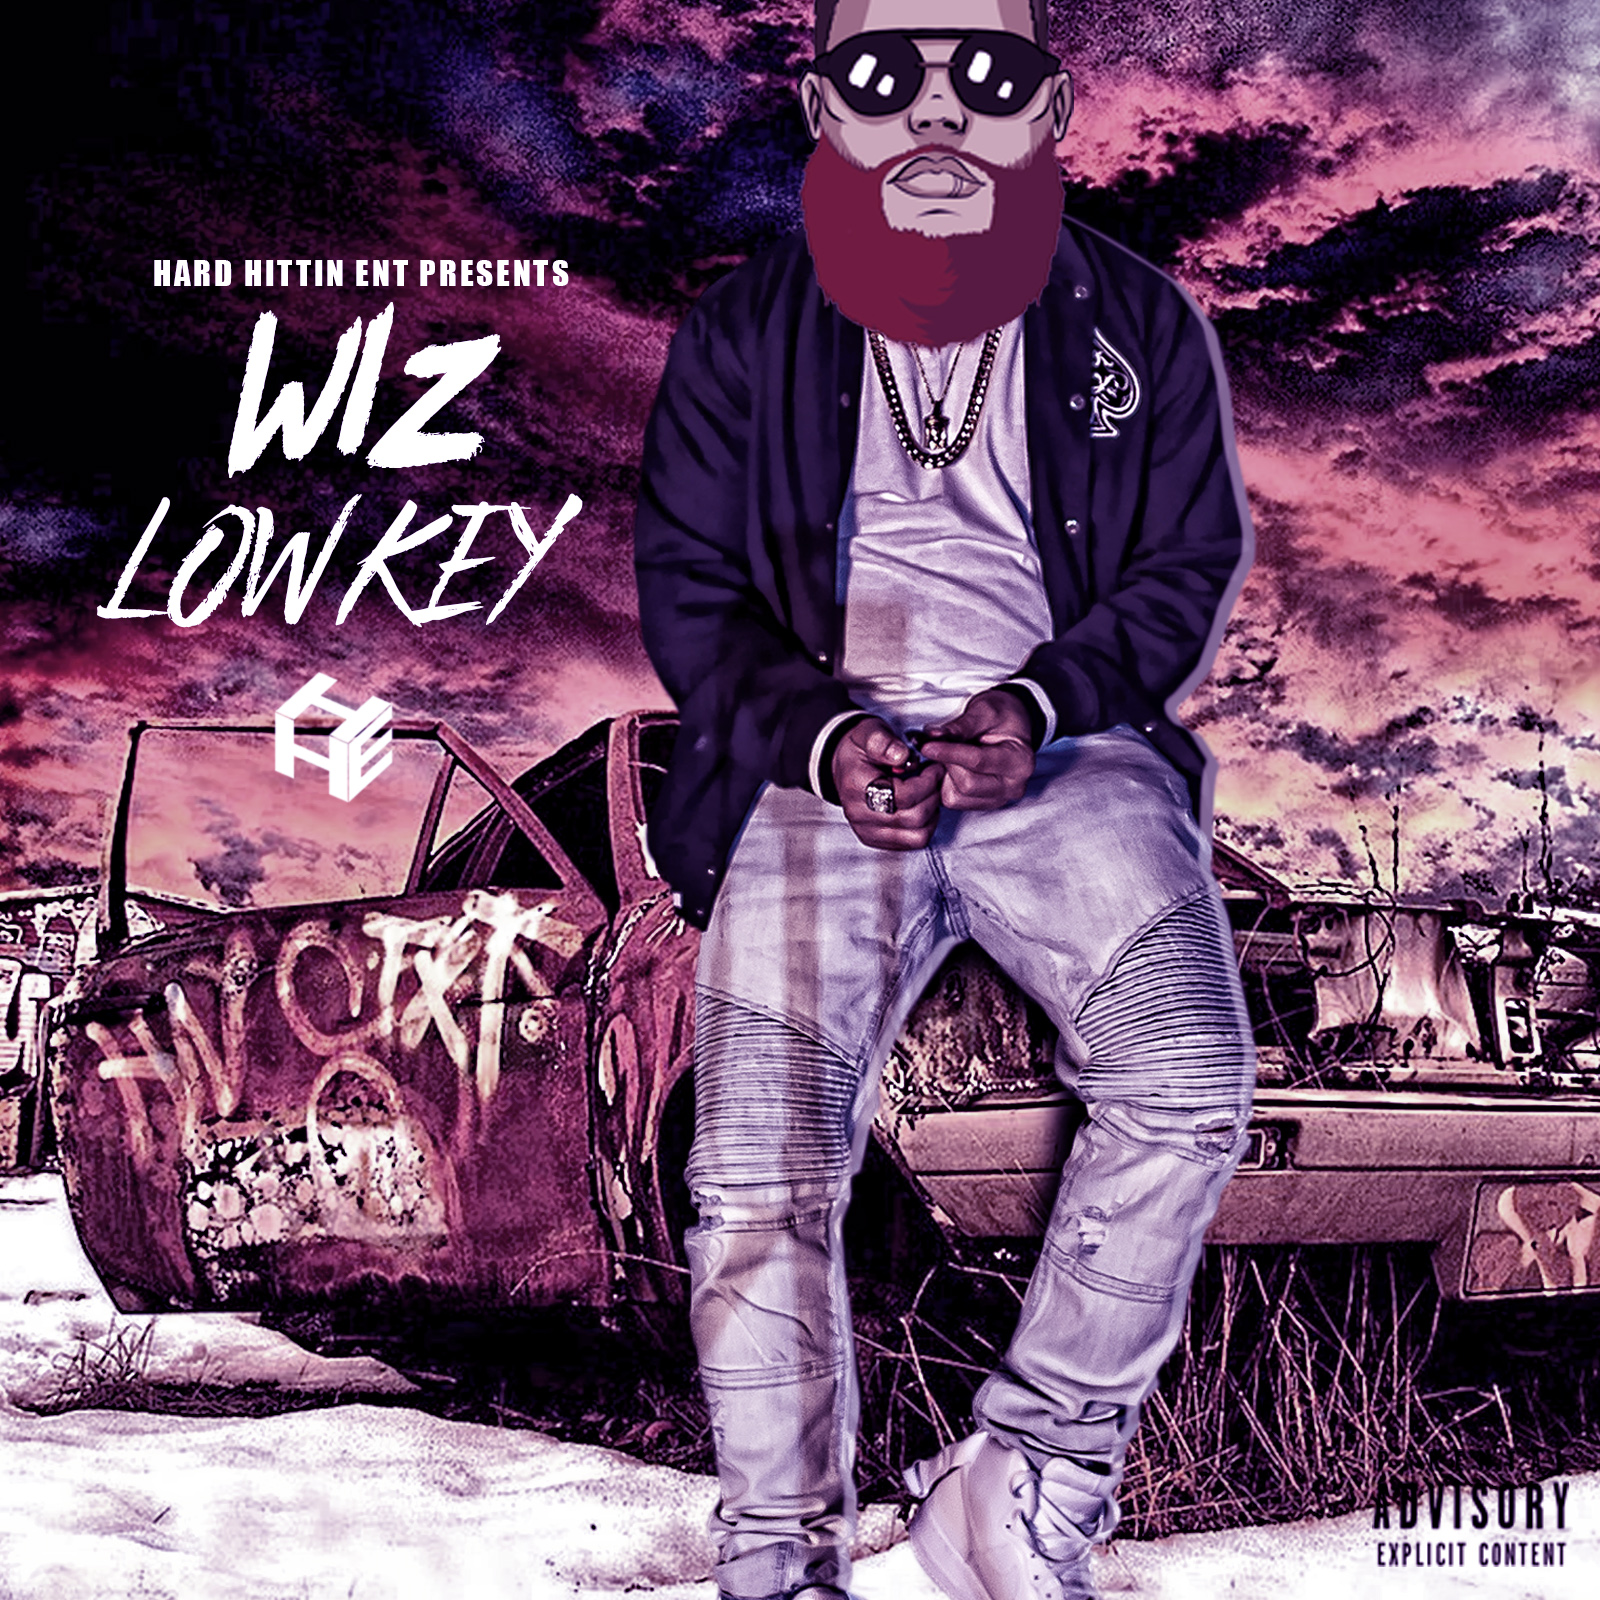 Wiz of Hard Hittin Ent. Announces Launch of His Latest Singles, Low Key' Featured on Independent Still Major